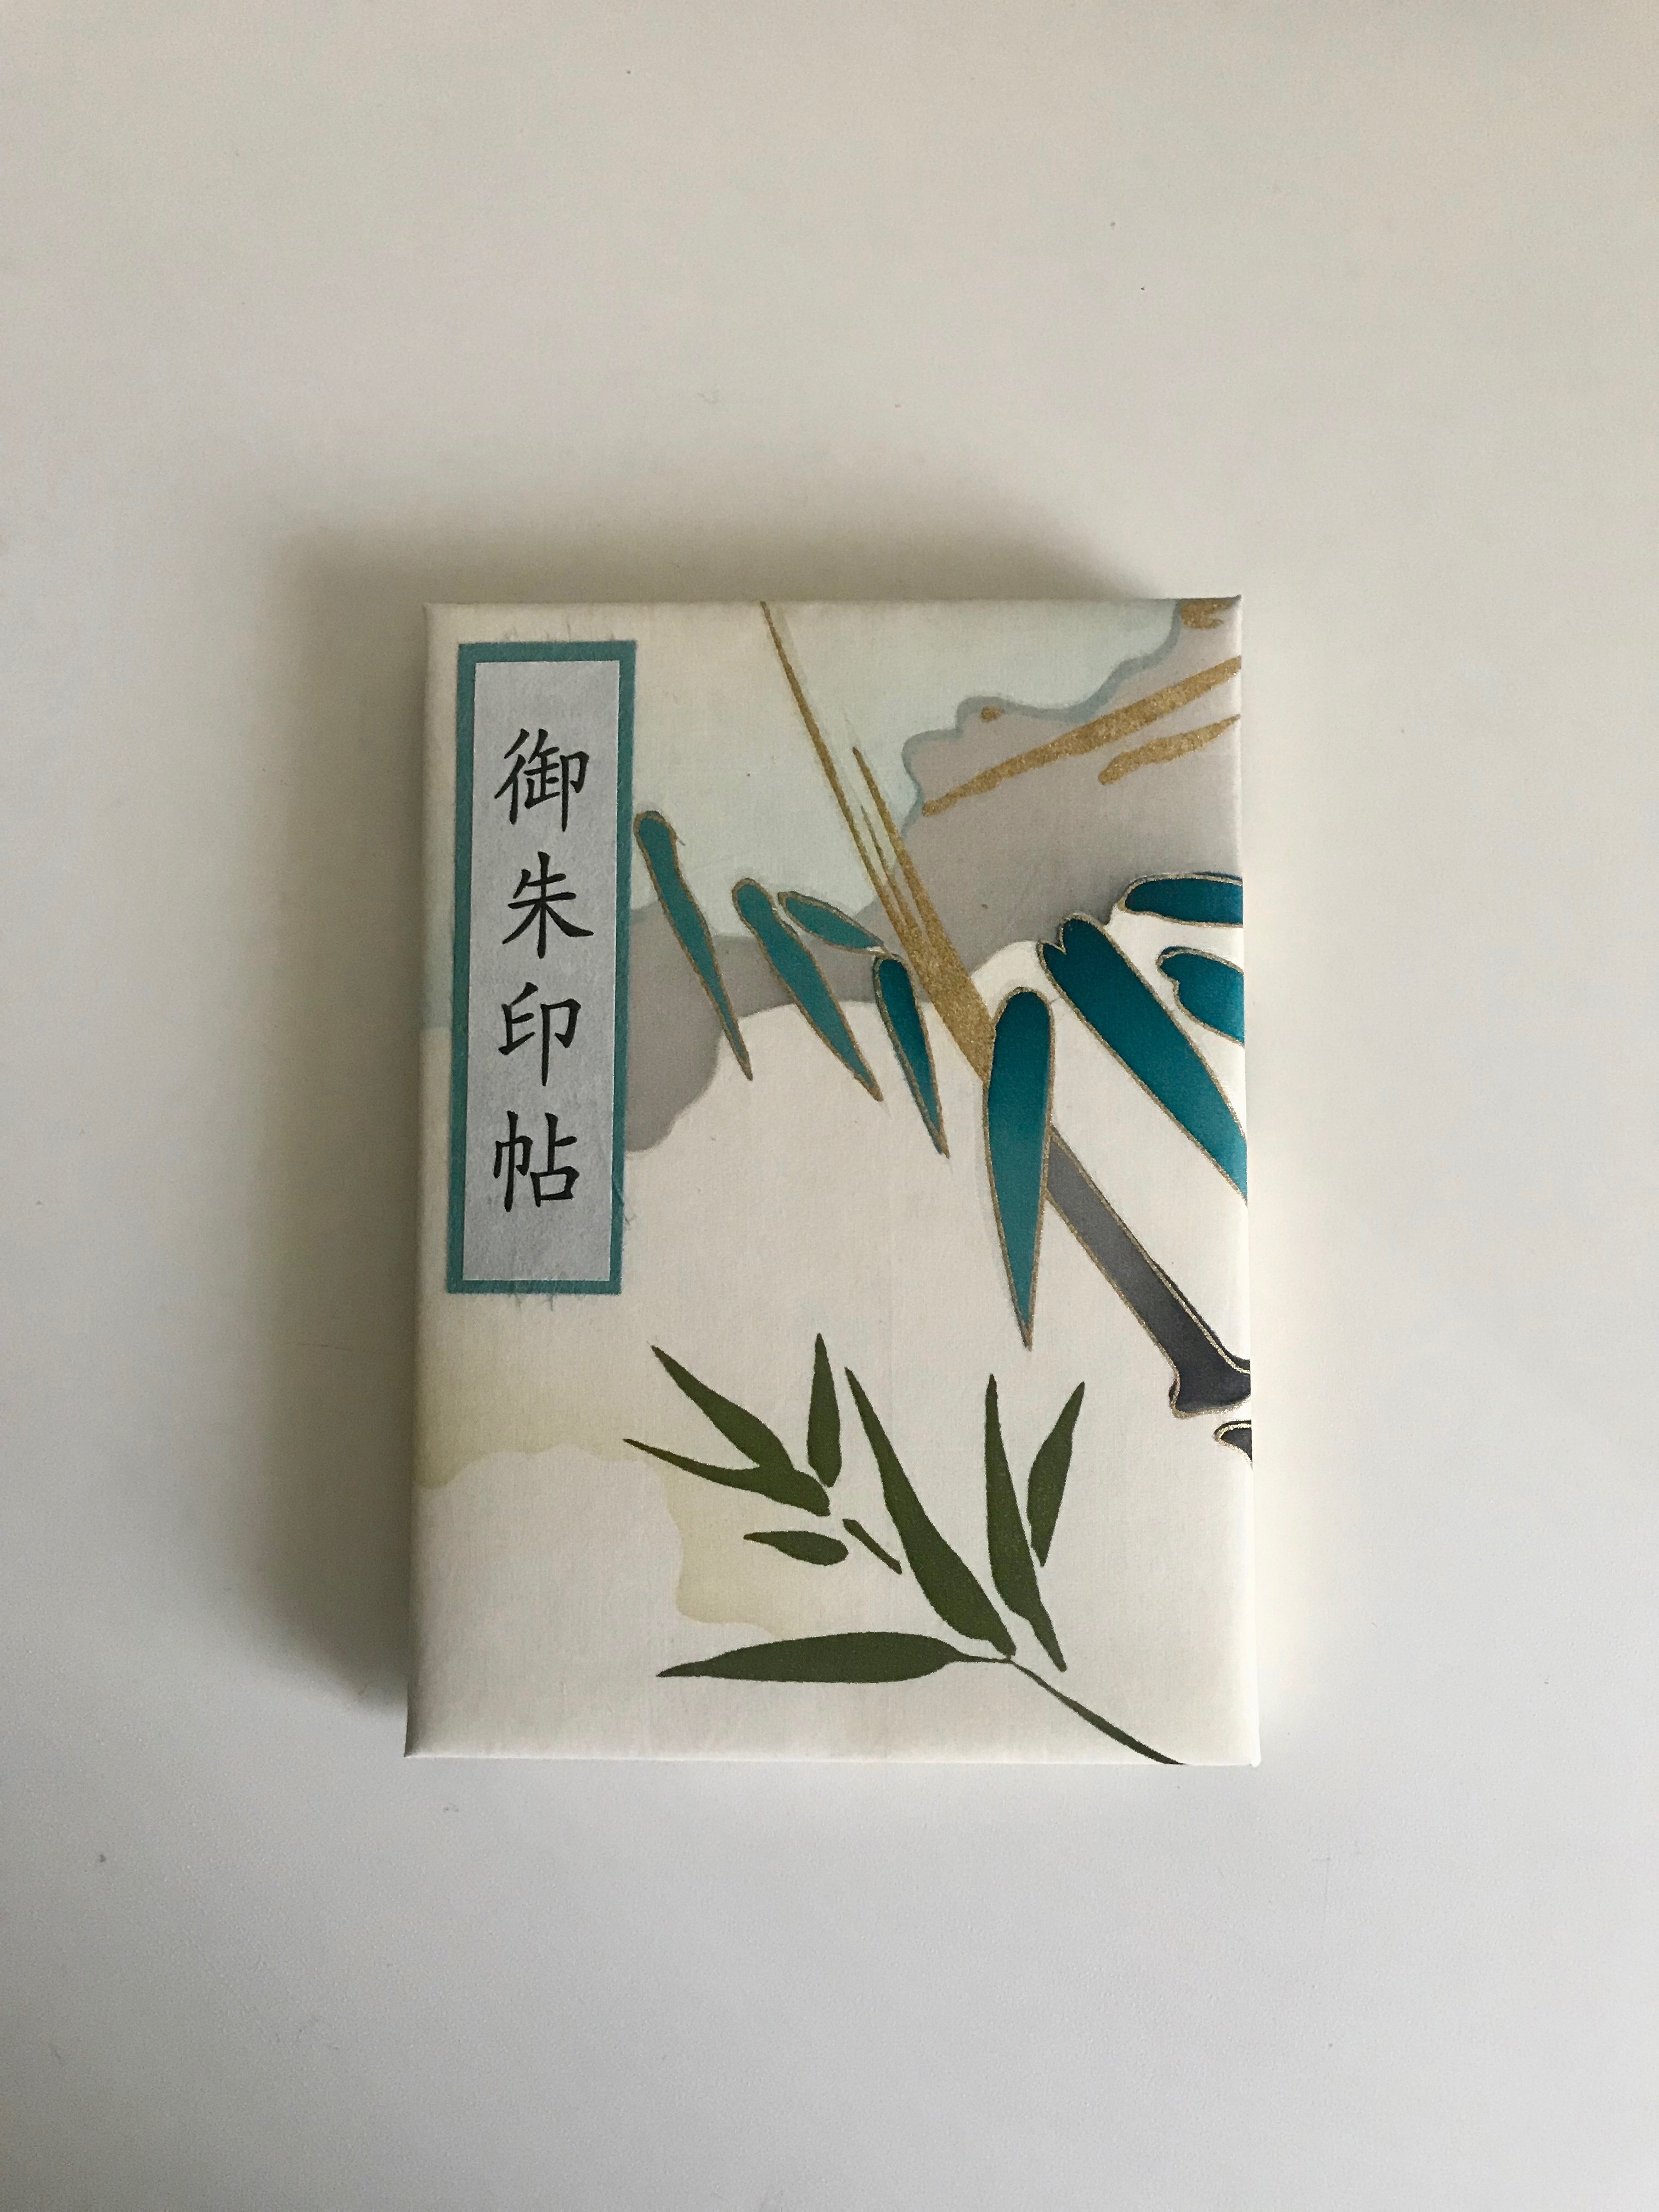 sold out 御朱印帳(青笹)